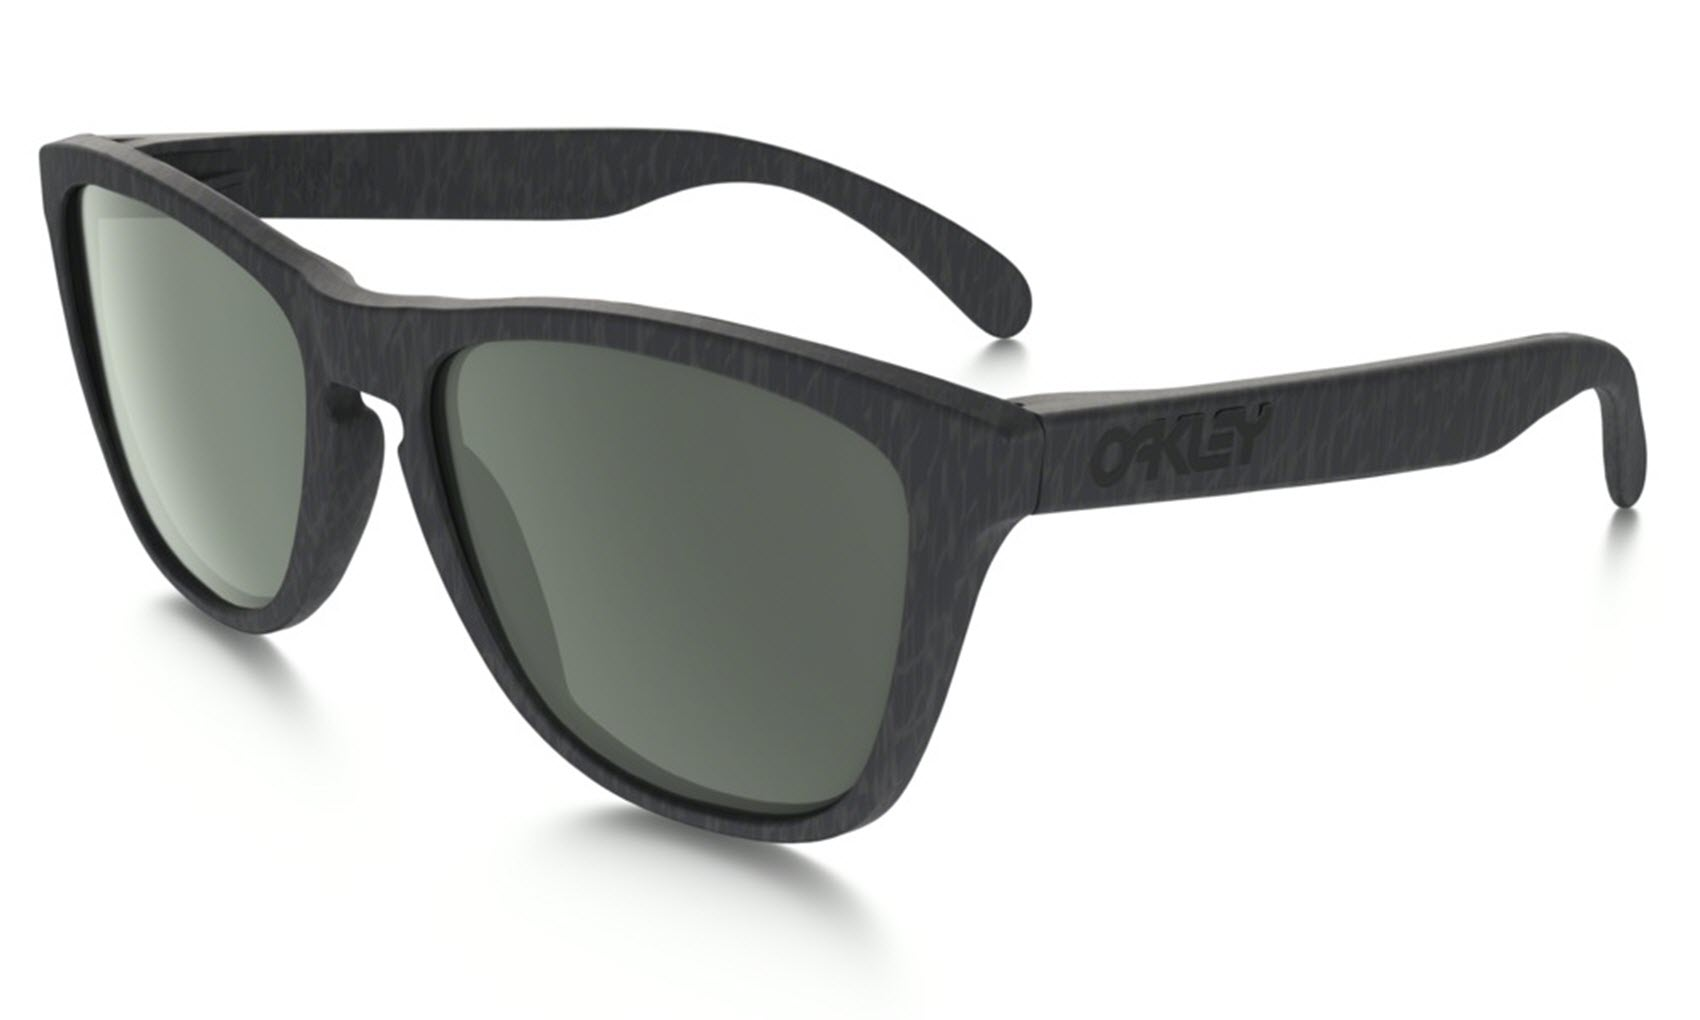 Product image of Oakley Frogskins Sunglasses in Gunpowder with Dark Grey Lens